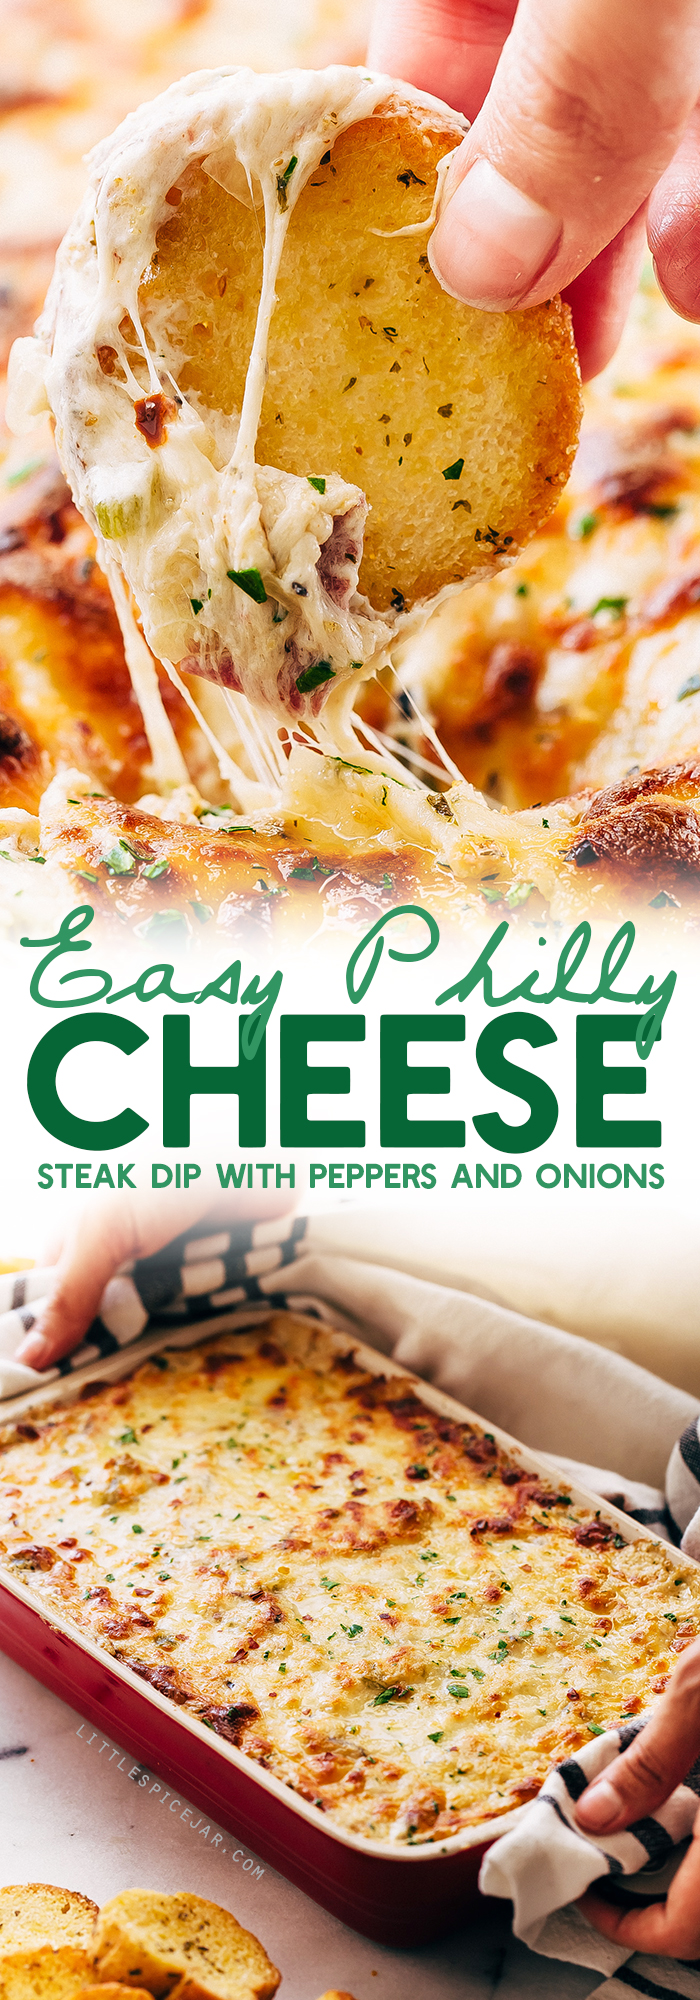 Easy Philly Cheese Steak Dip - Learn how to make a quick and easy philly cheese steak dip that takes about 30 minutes from start to finish! #superbowl #gamedayfood #cheesesteakdip #phillycheesesteakdip #footballfood | Littlespicejar.com